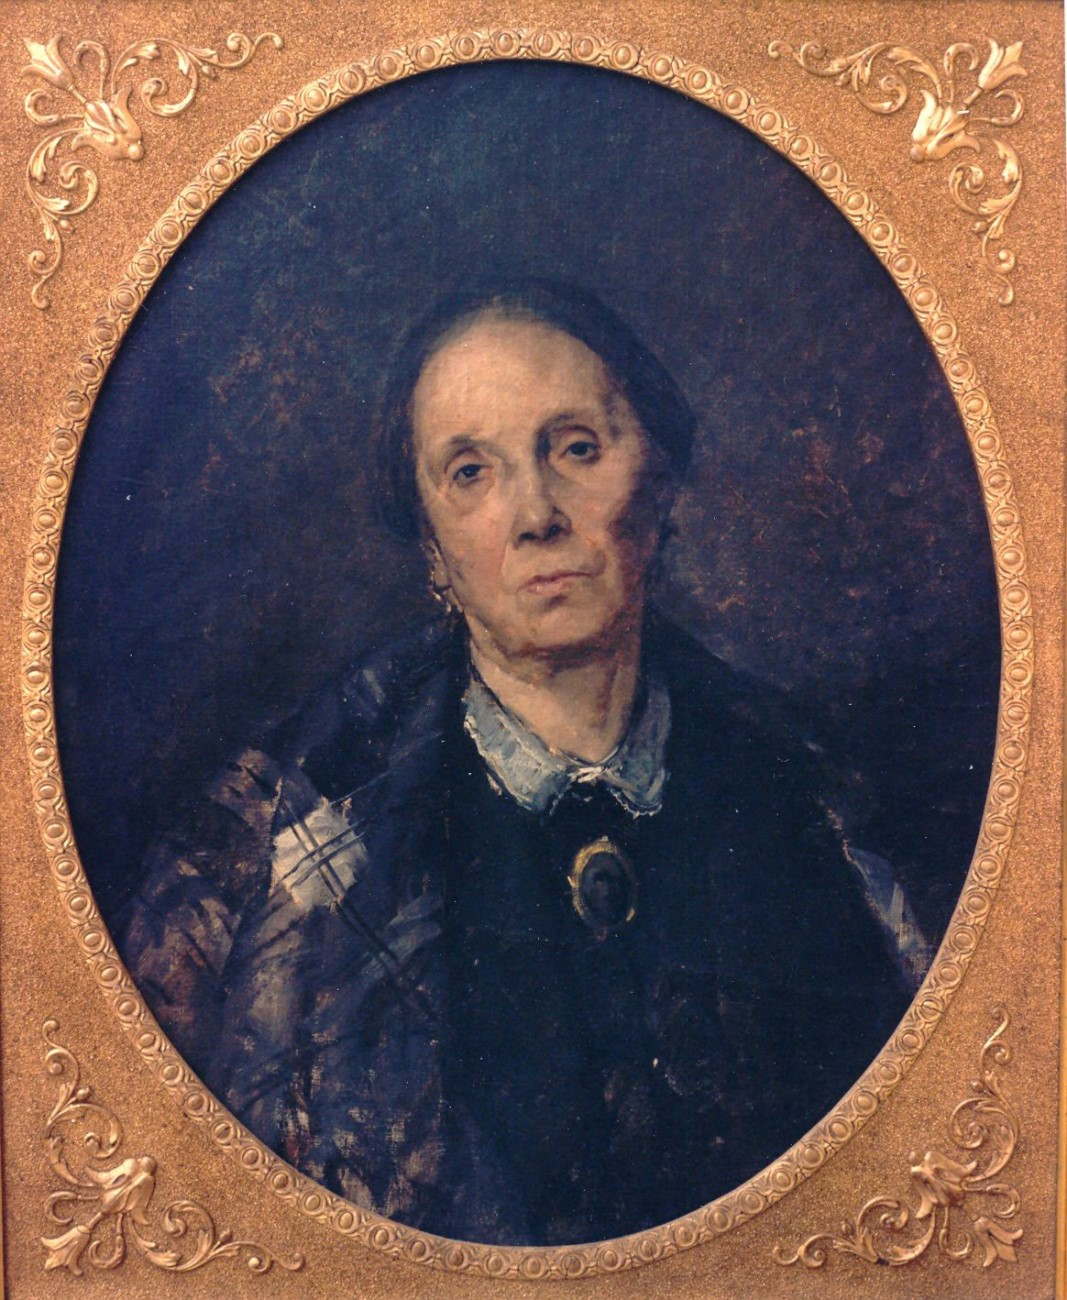 His mother, Josefa Marco